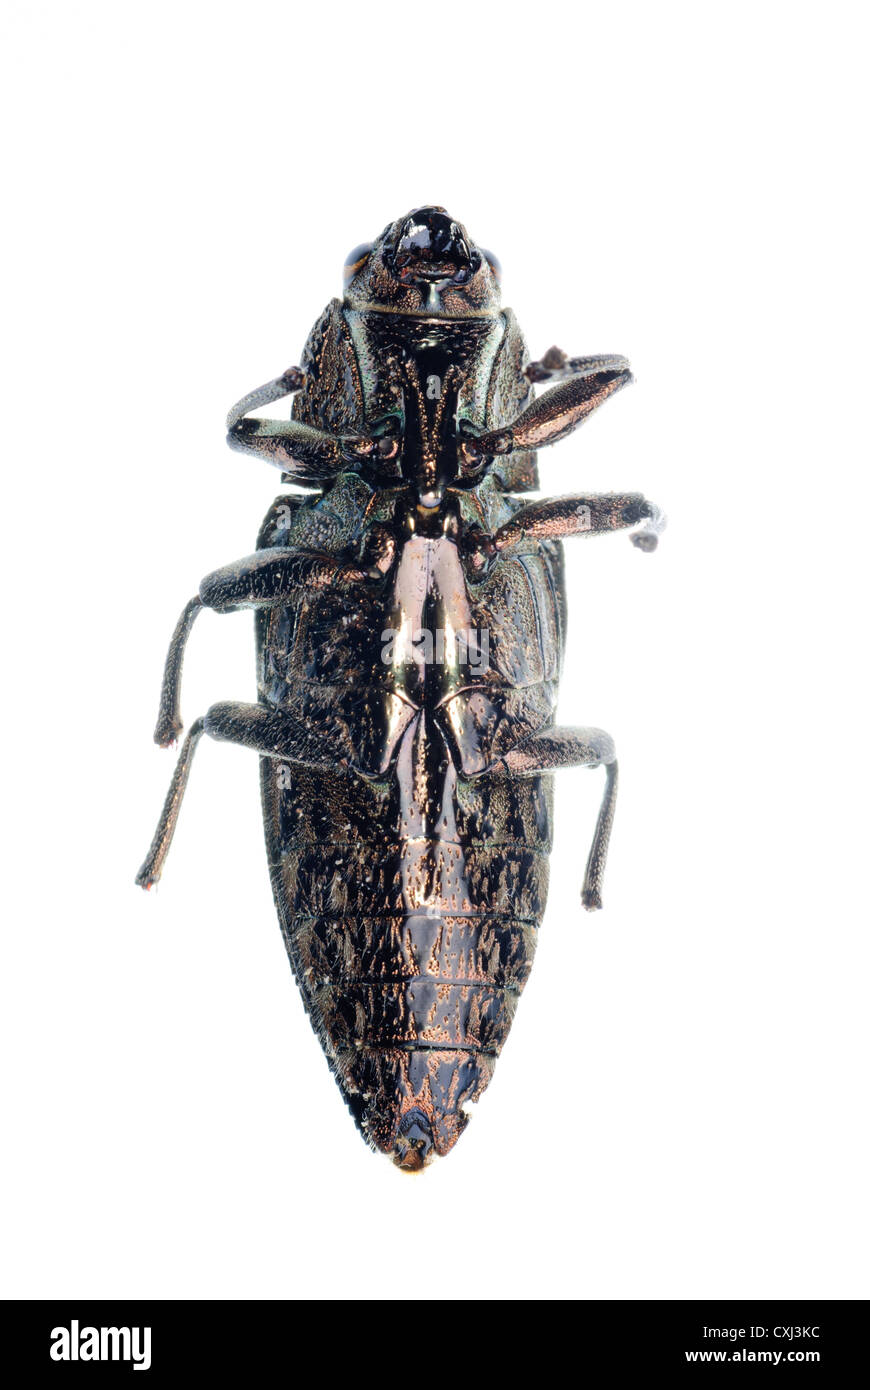 insect jewel beetle - Stock Image